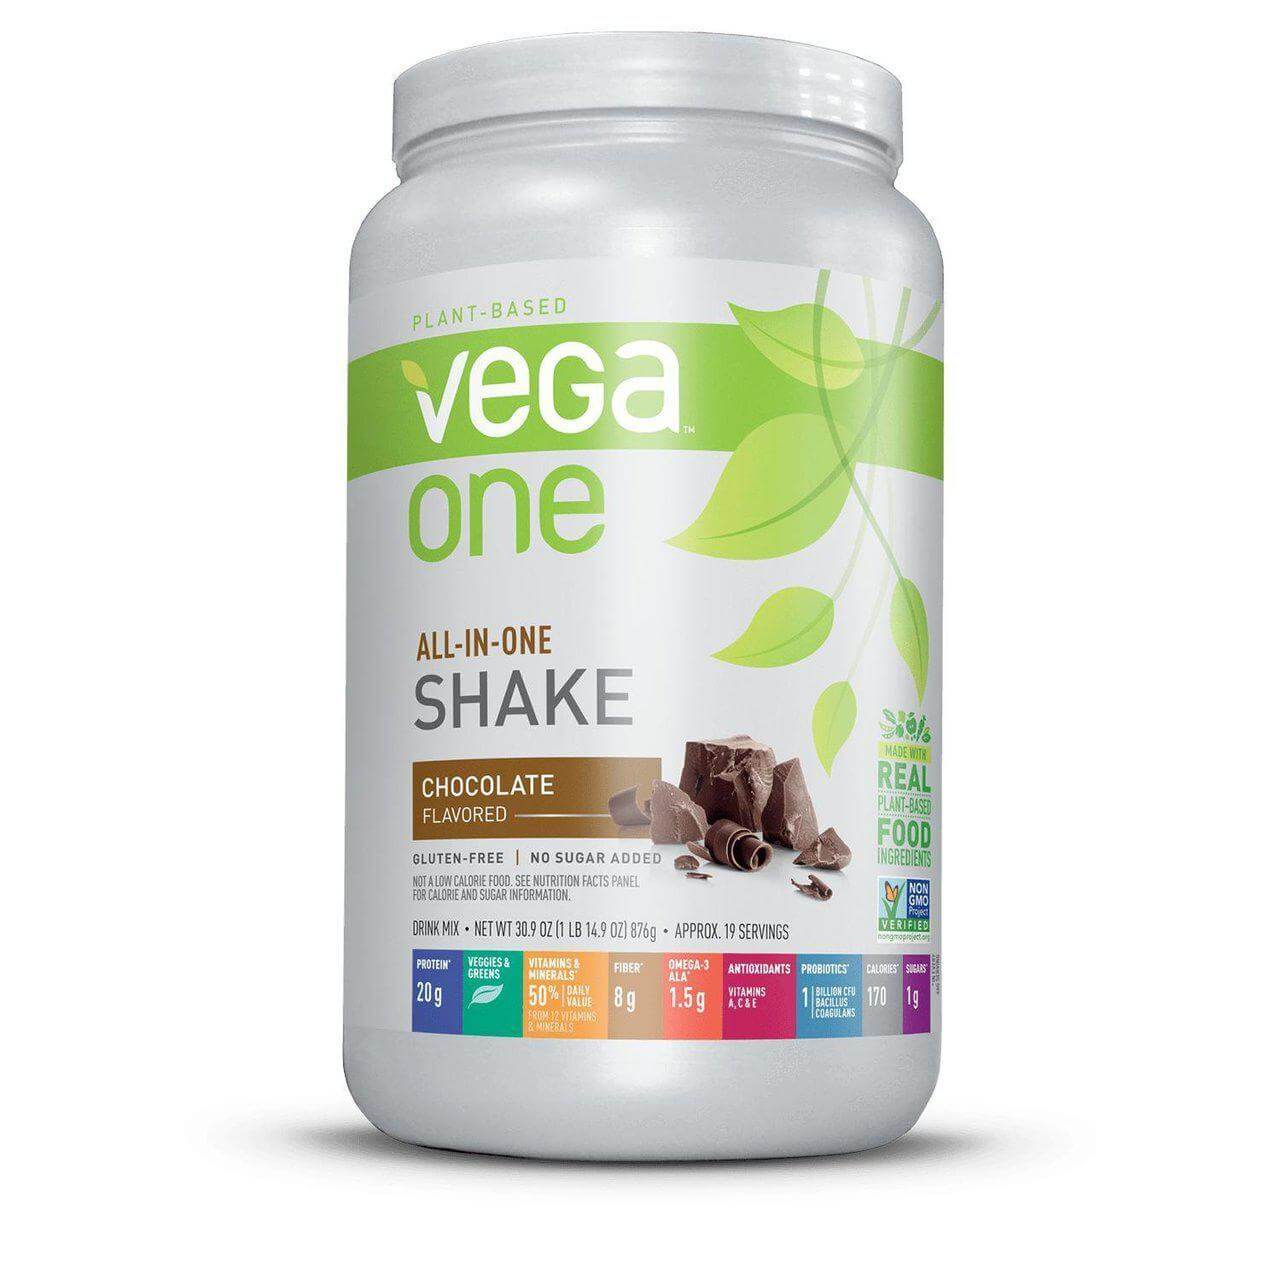 Vega One Meal Replacement Shake